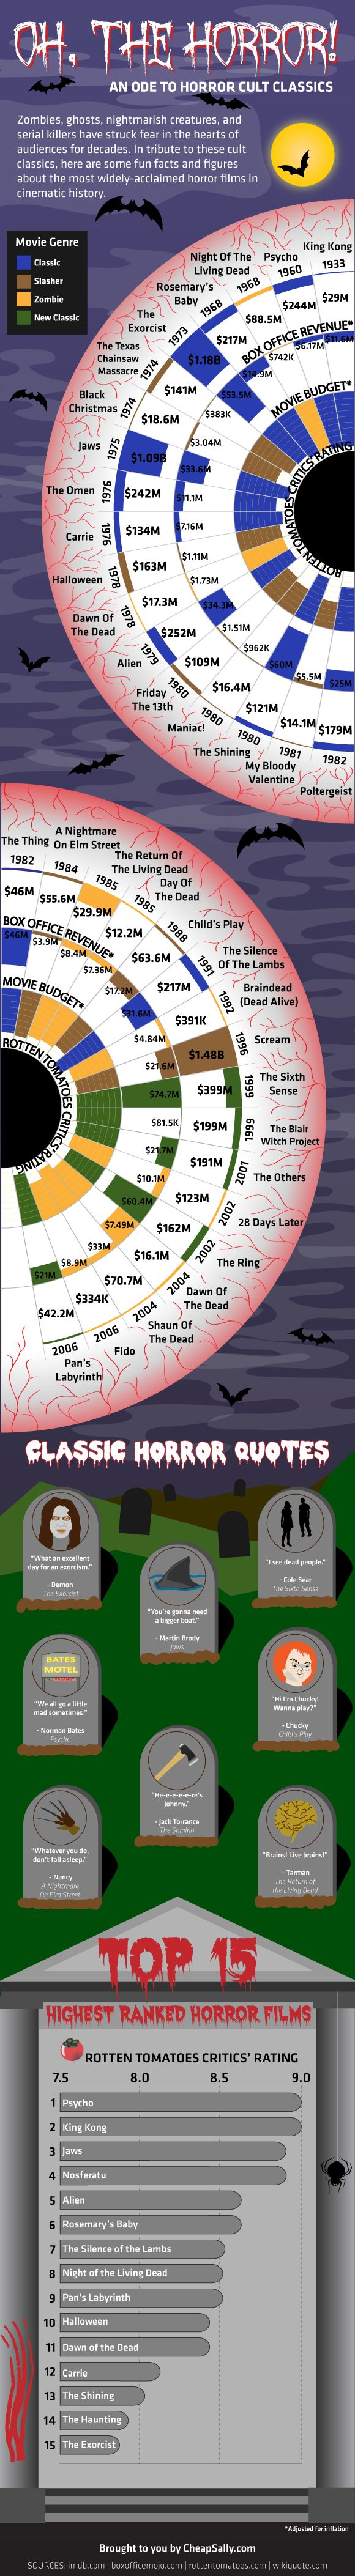 a Halloween ode to classic horror filmsto watch the full movie hd in this title please click http://evenmovie01.blogspot.co.id You must become a member first, Register for Free